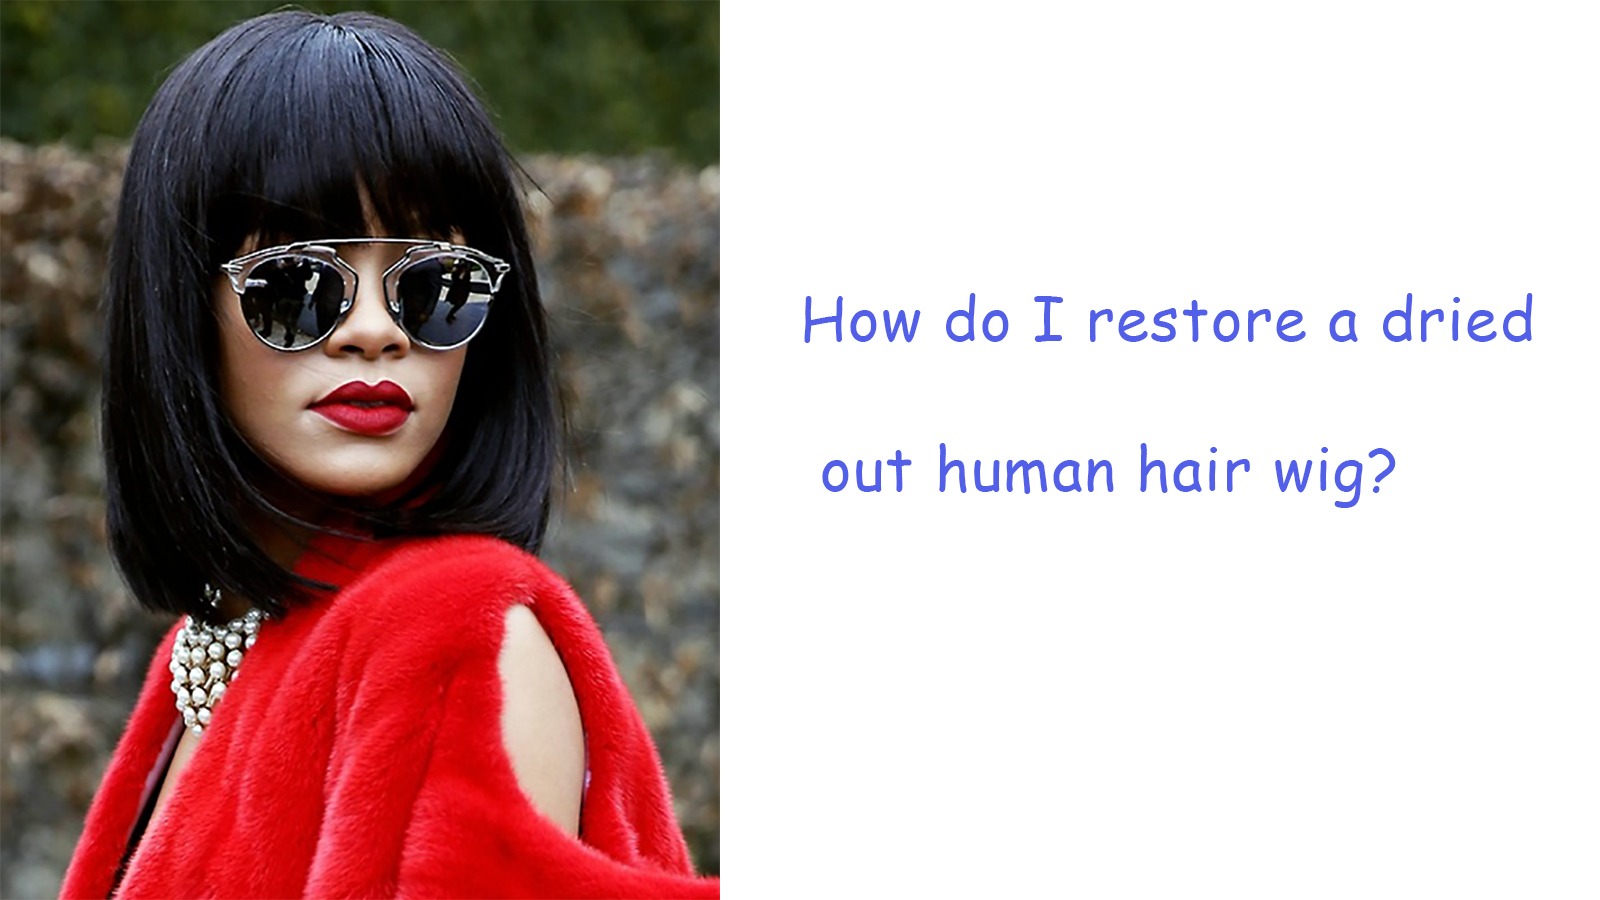 How do I restore a dried out human hair wig?